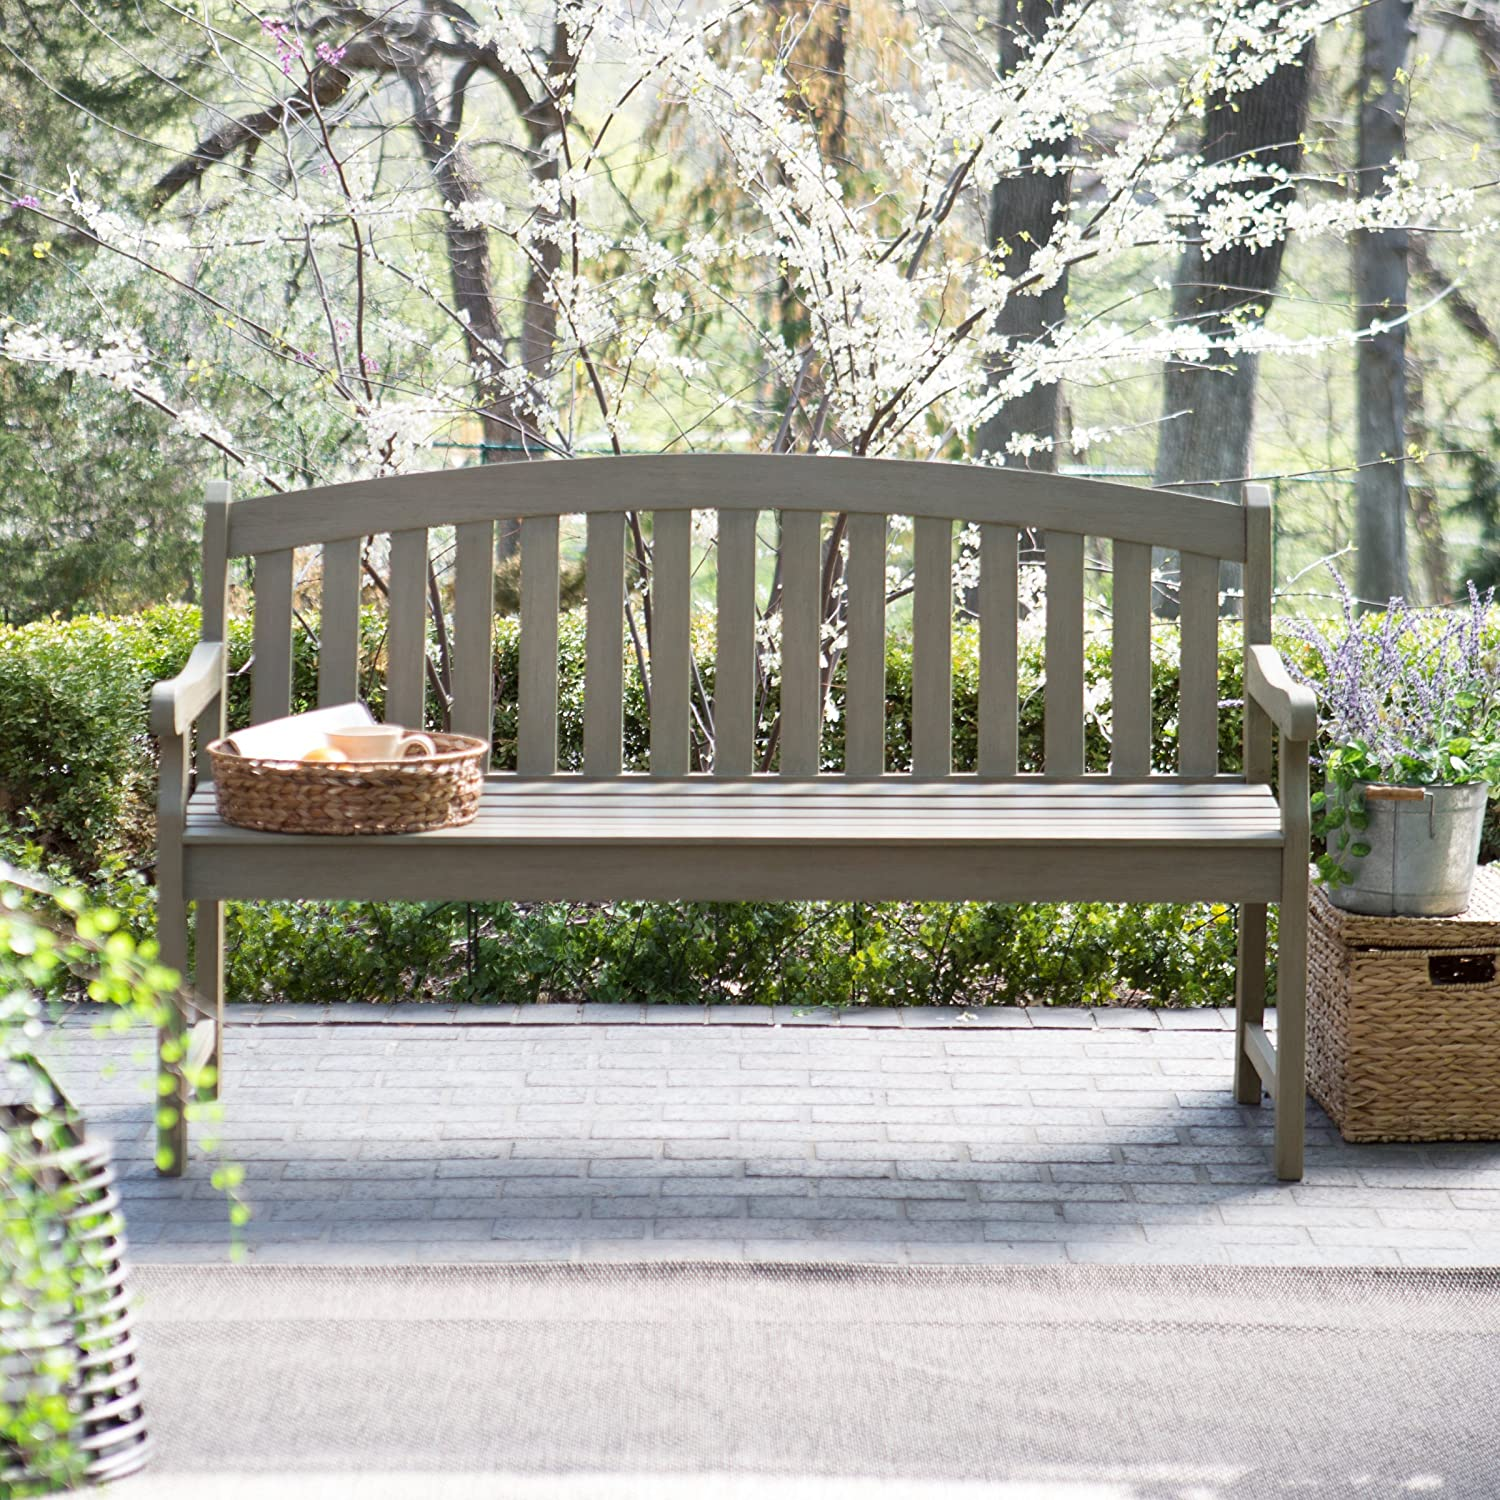 Amazon.com : Coral Coast Amherst Curved Back 5 Ft. Outdoor Wood Garden Bench  Driftwood : Garden U0026 Outdoor